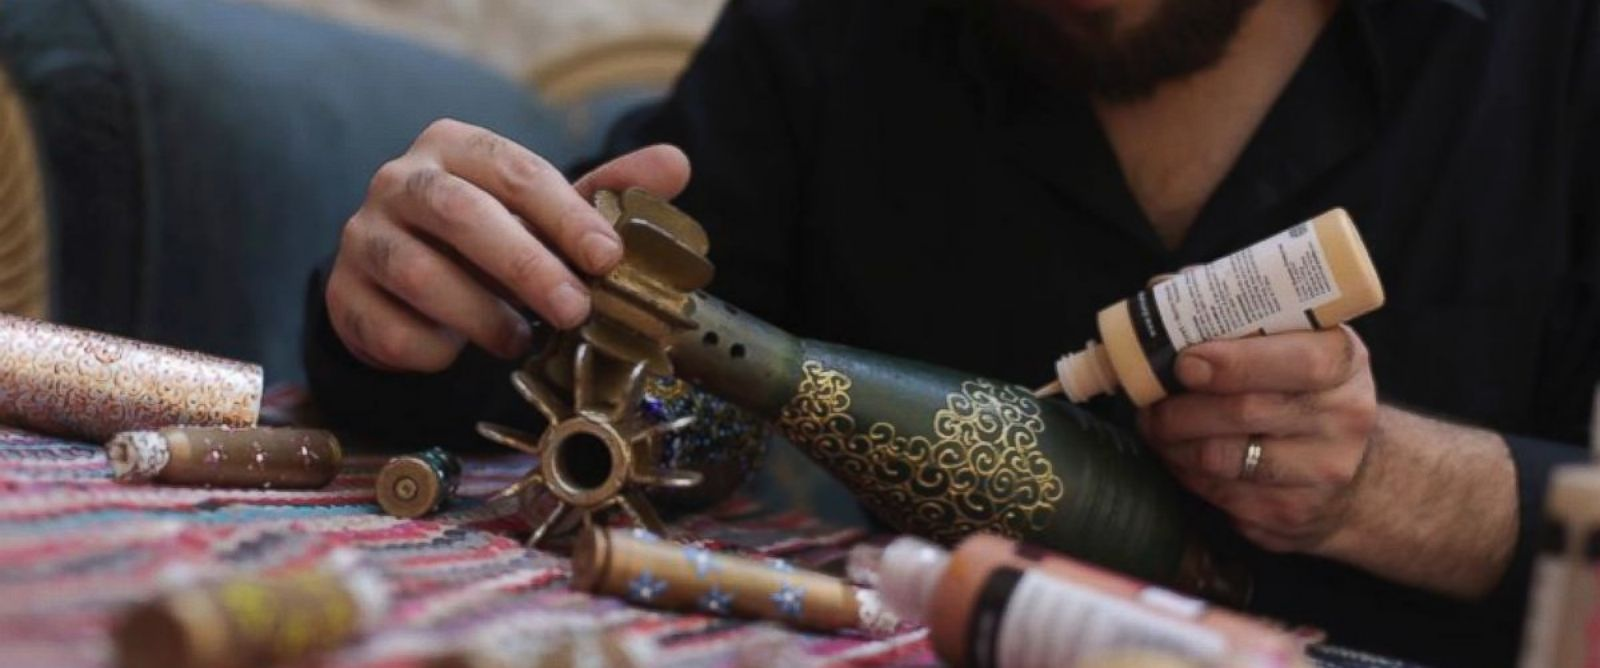 PHOTO: Douma-based artist Akram Abou al-Fouz at work, painting on mortar shells.